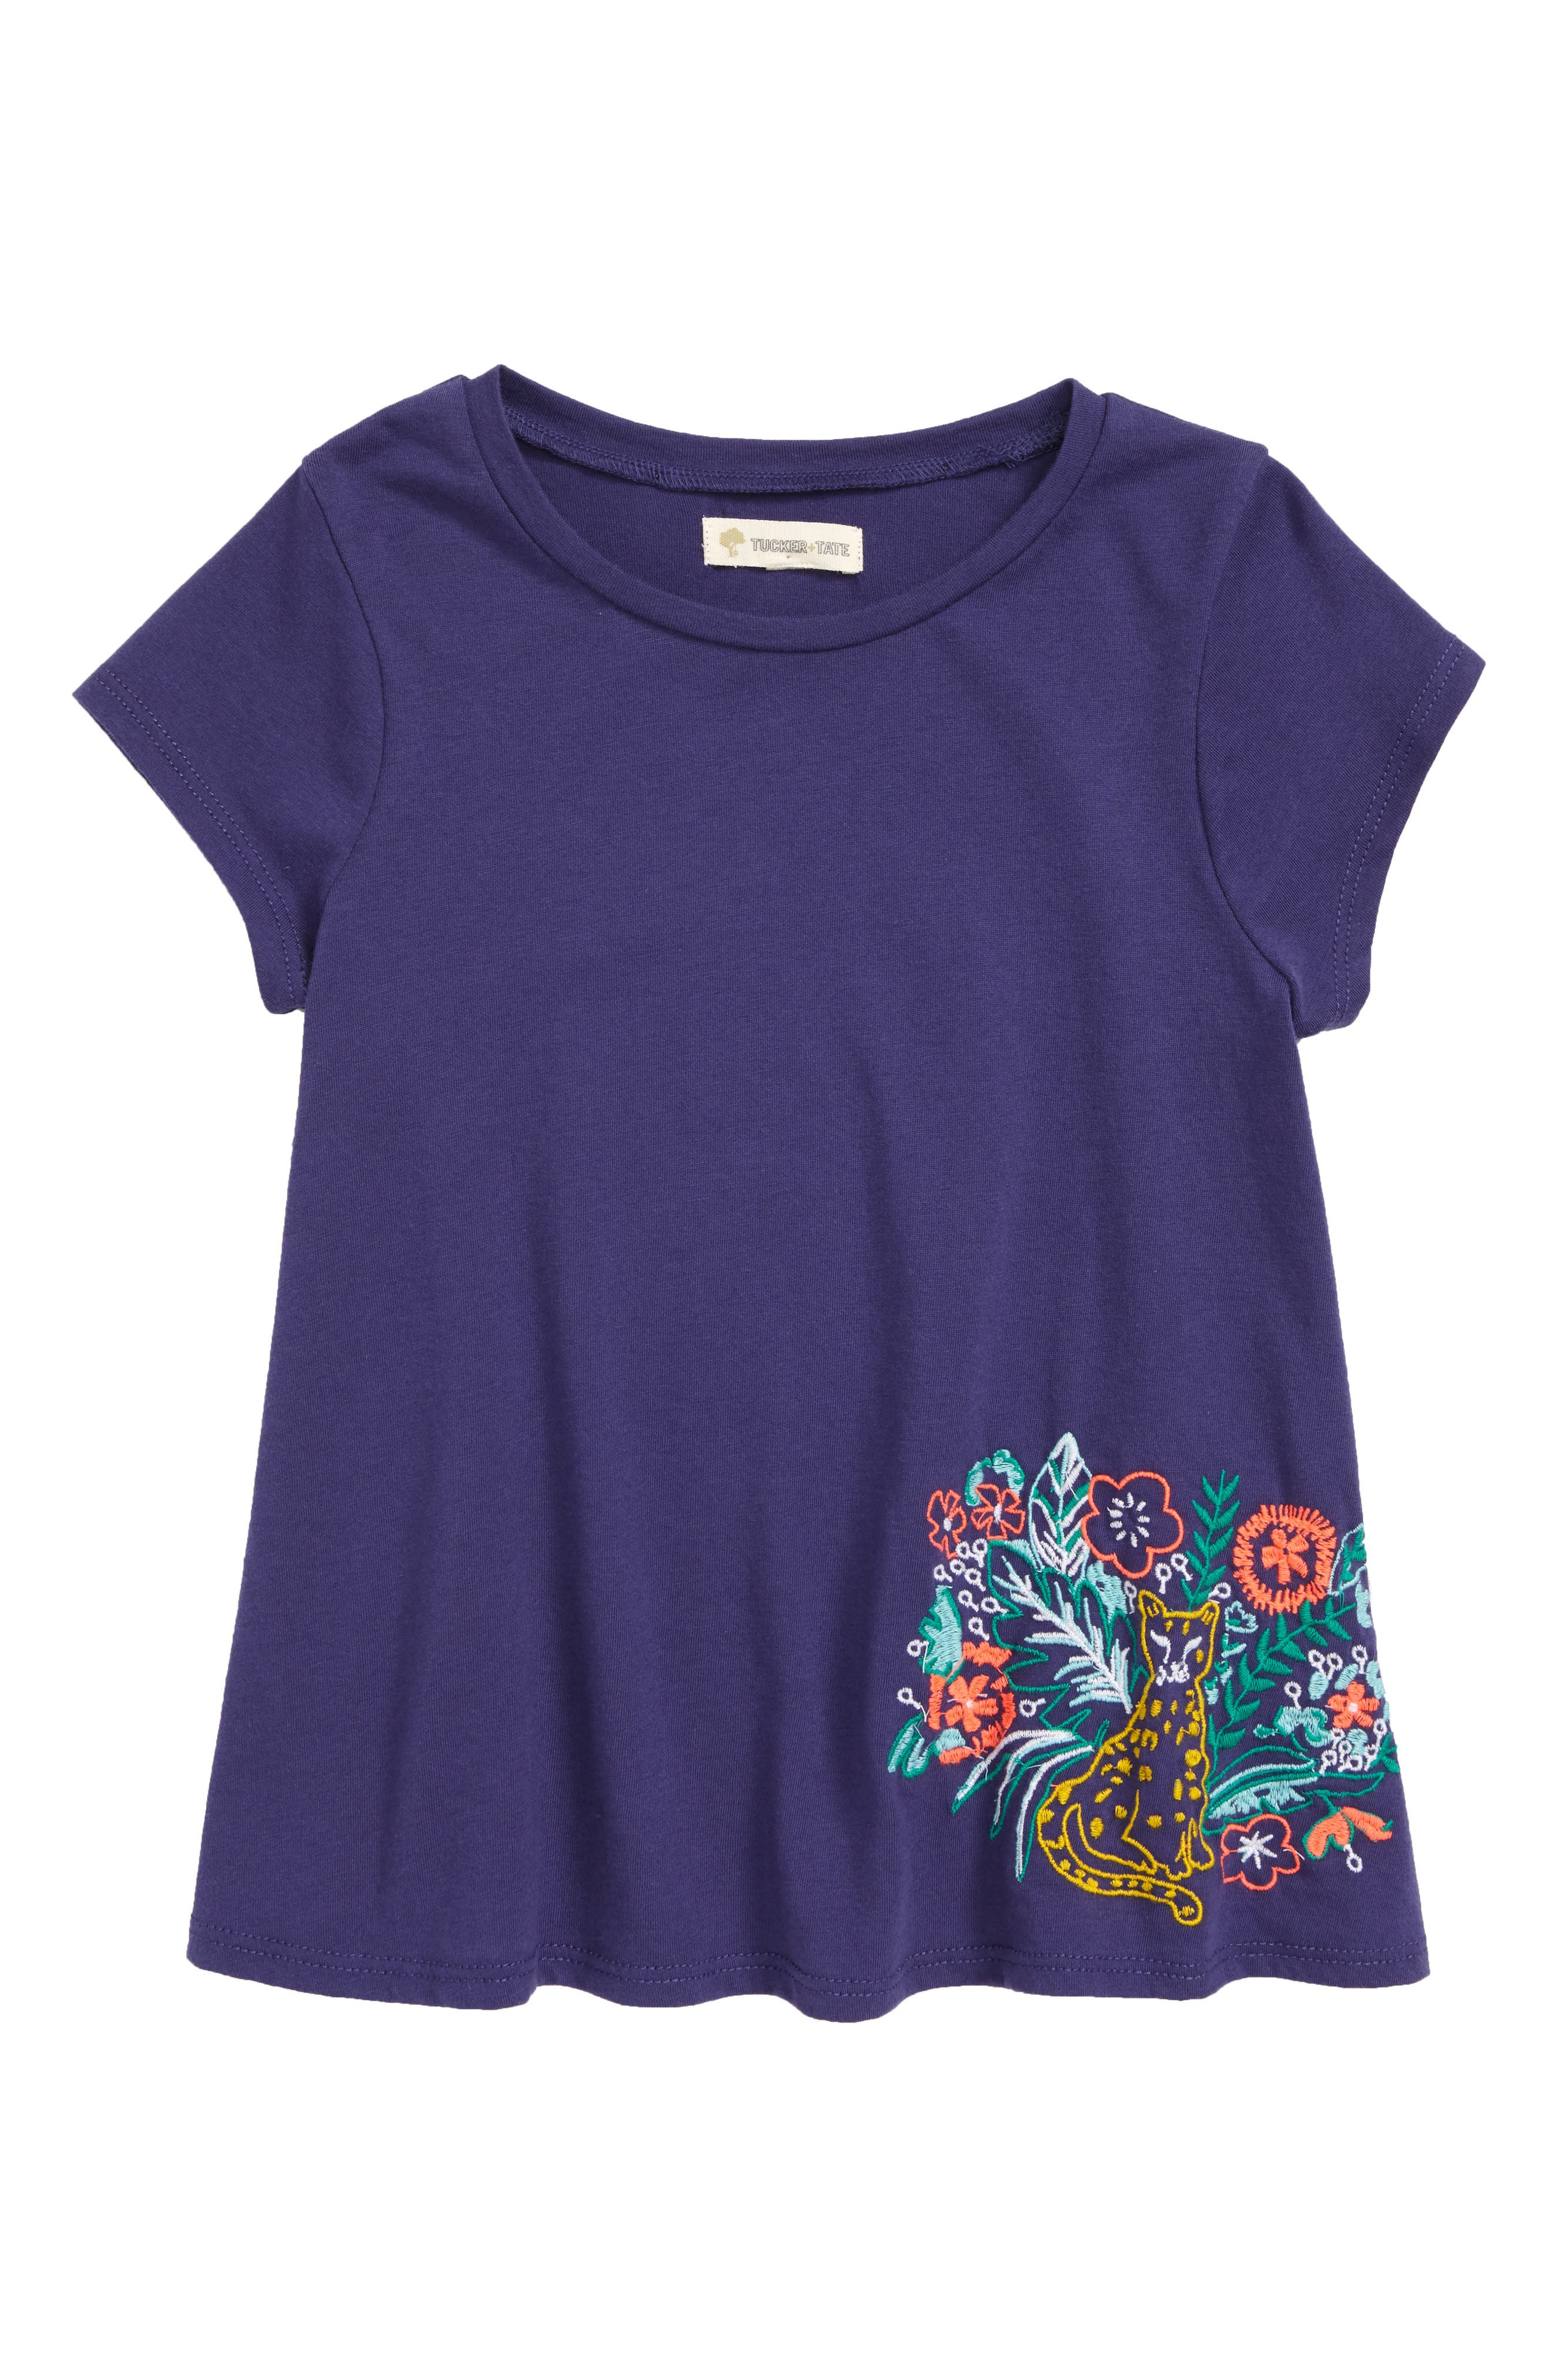 Embroidered Swing Tee,                             Main thumbnail 1, color,                             410